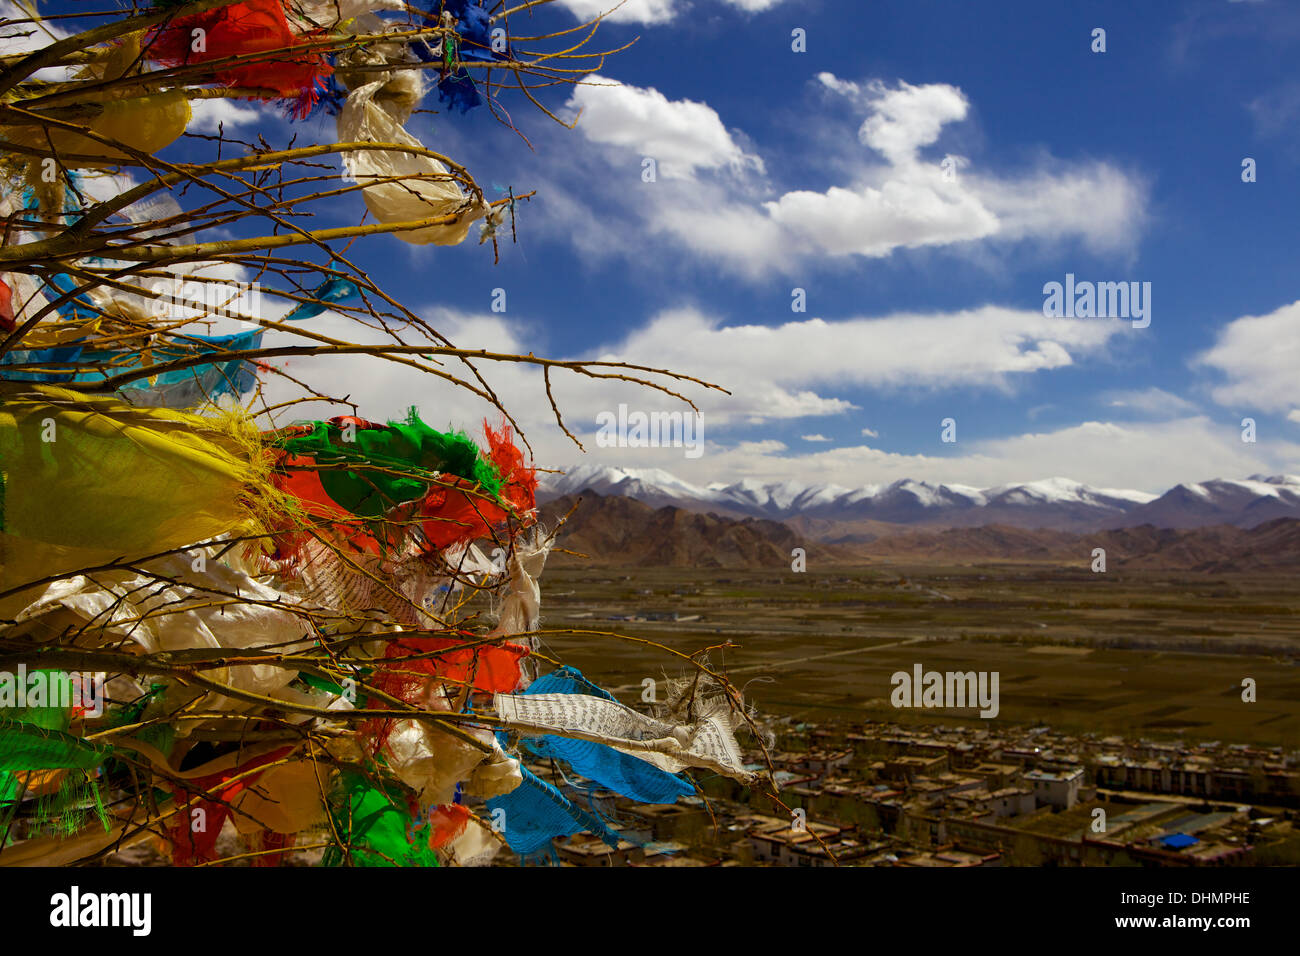 Prayer flags with mountains and the city of Gyantse (Gyangtse) in background, Tibet, China, Asia - Stock Image